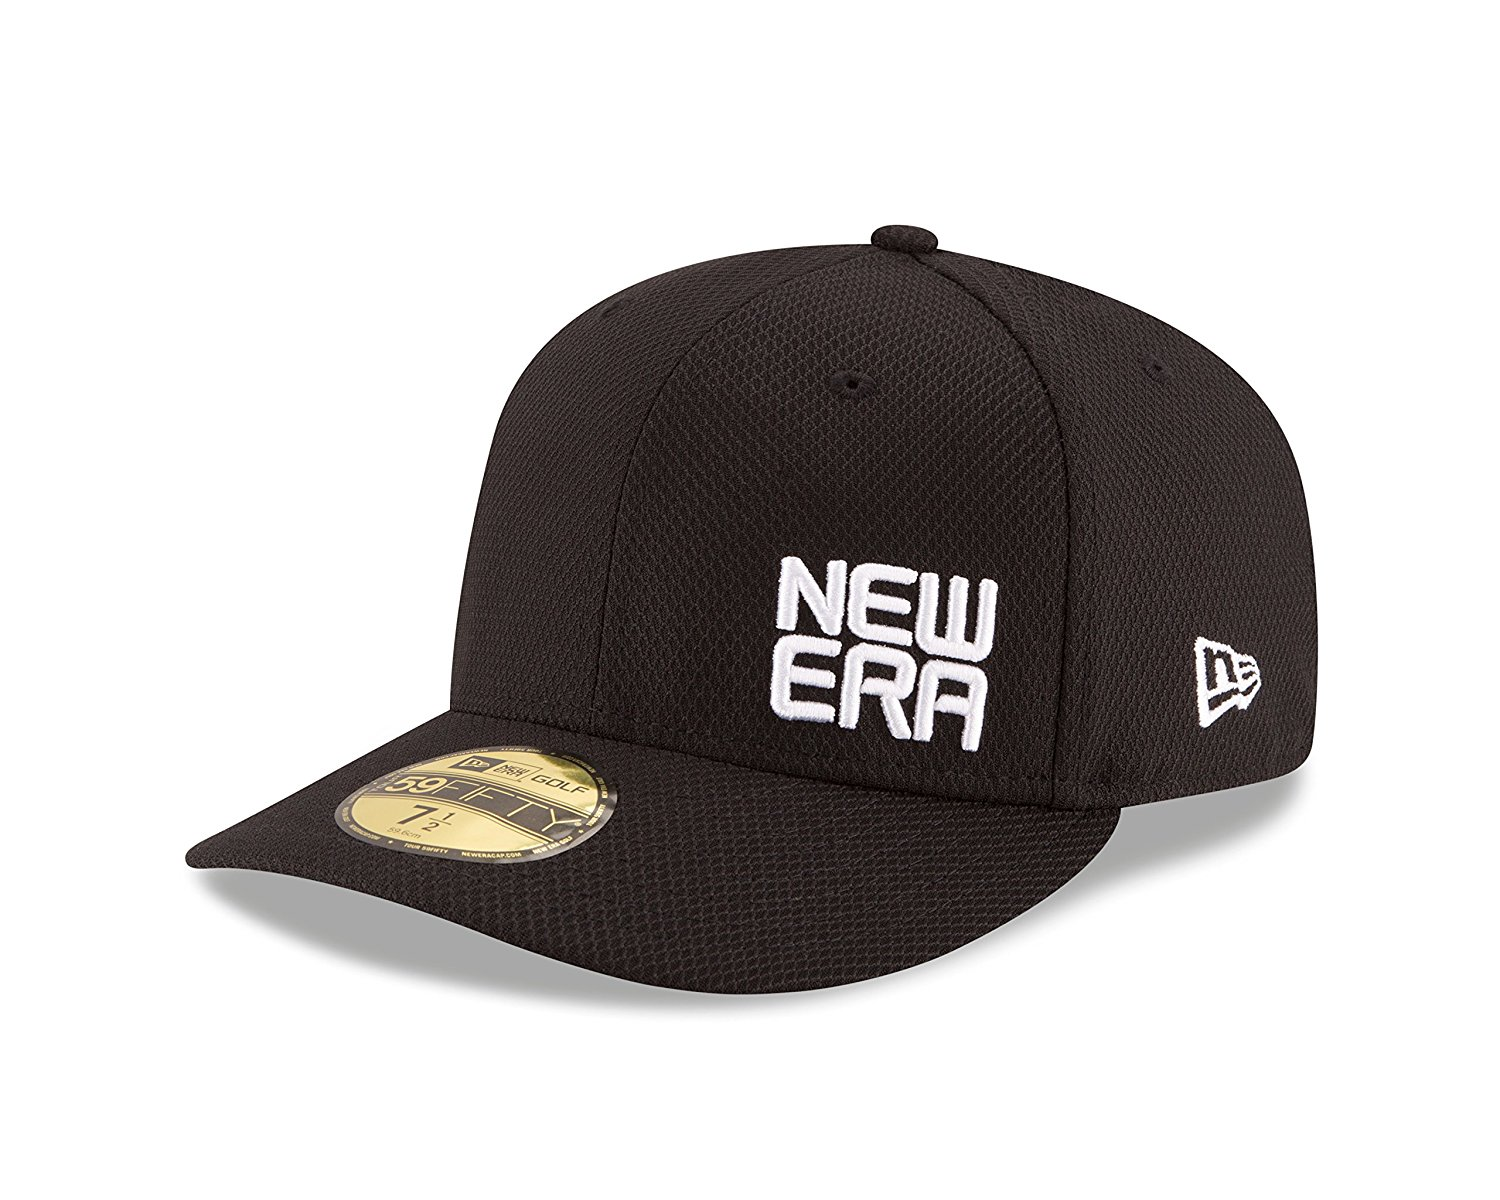 New Era Golf Tour 59FIFTY Stacked Logo Fitted Cap - WF Shopping 9e0214c8fcc